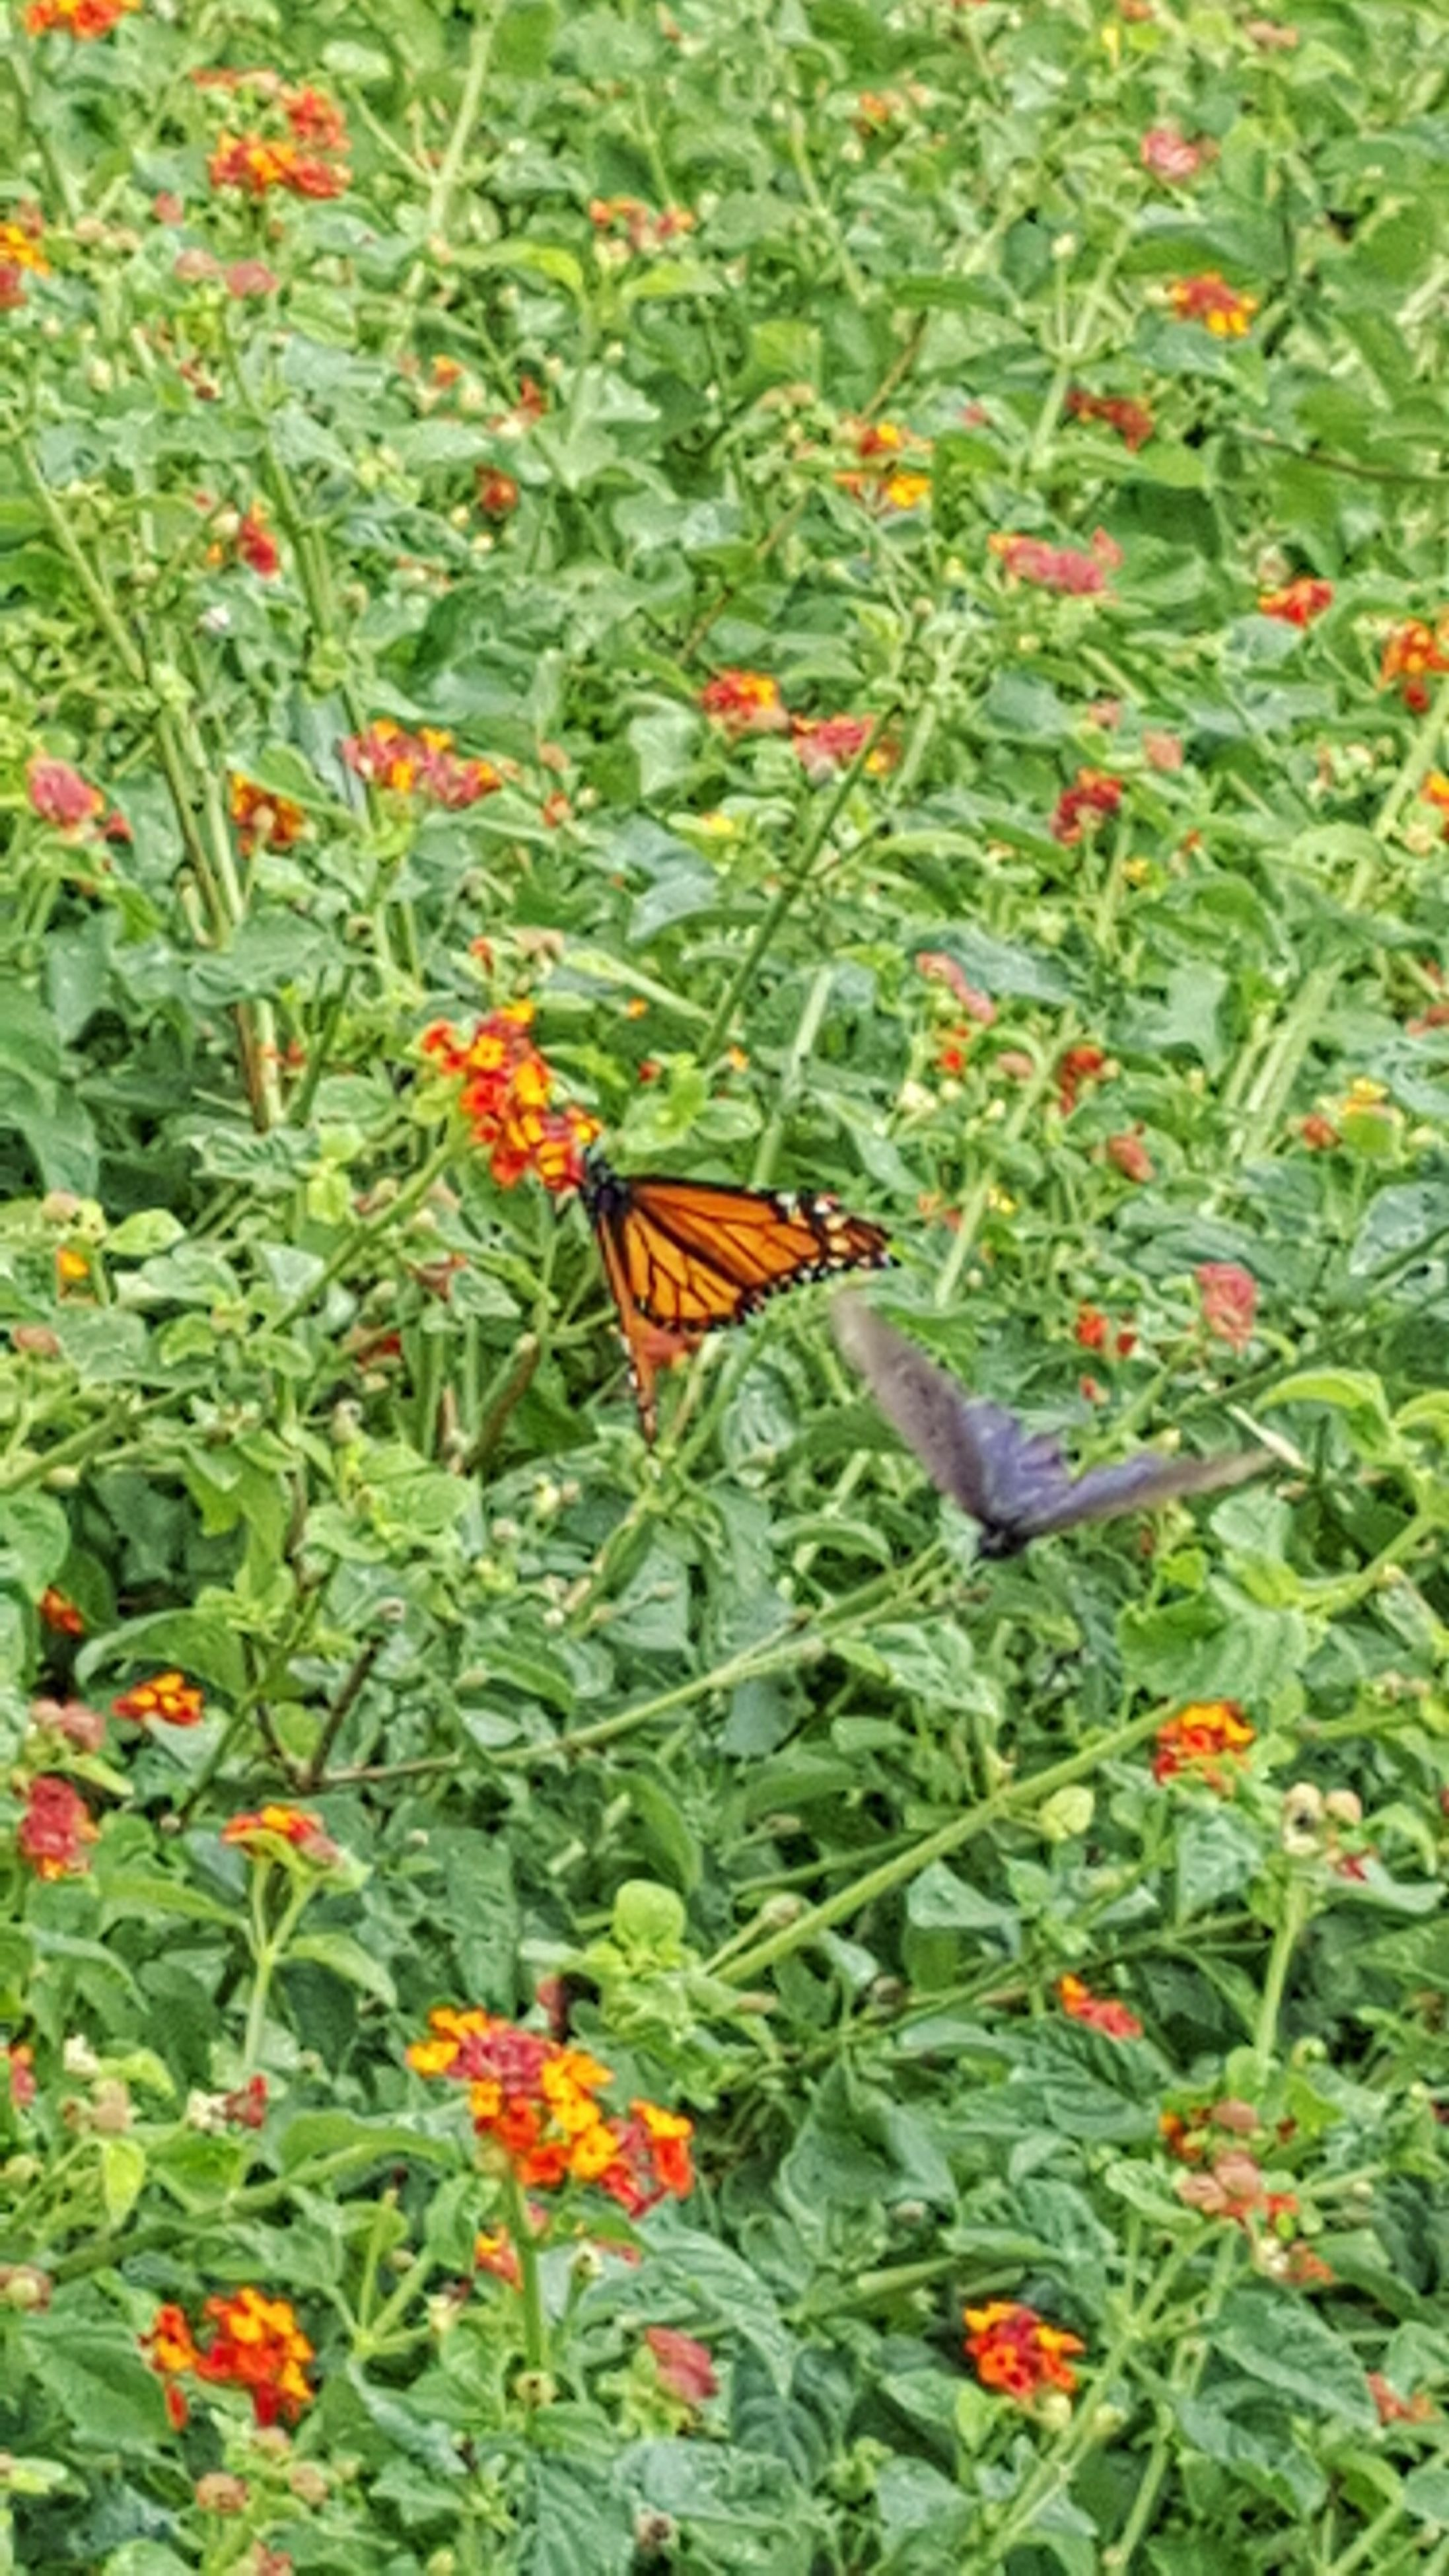 animals in the wild, animal themes, one animal, flower, insect, wildlife, plant, growth, green color, freshness, beauty in nature, nature, high angle view, orange color, butterfly - insect, leaf, fragility, red, day, outdoors